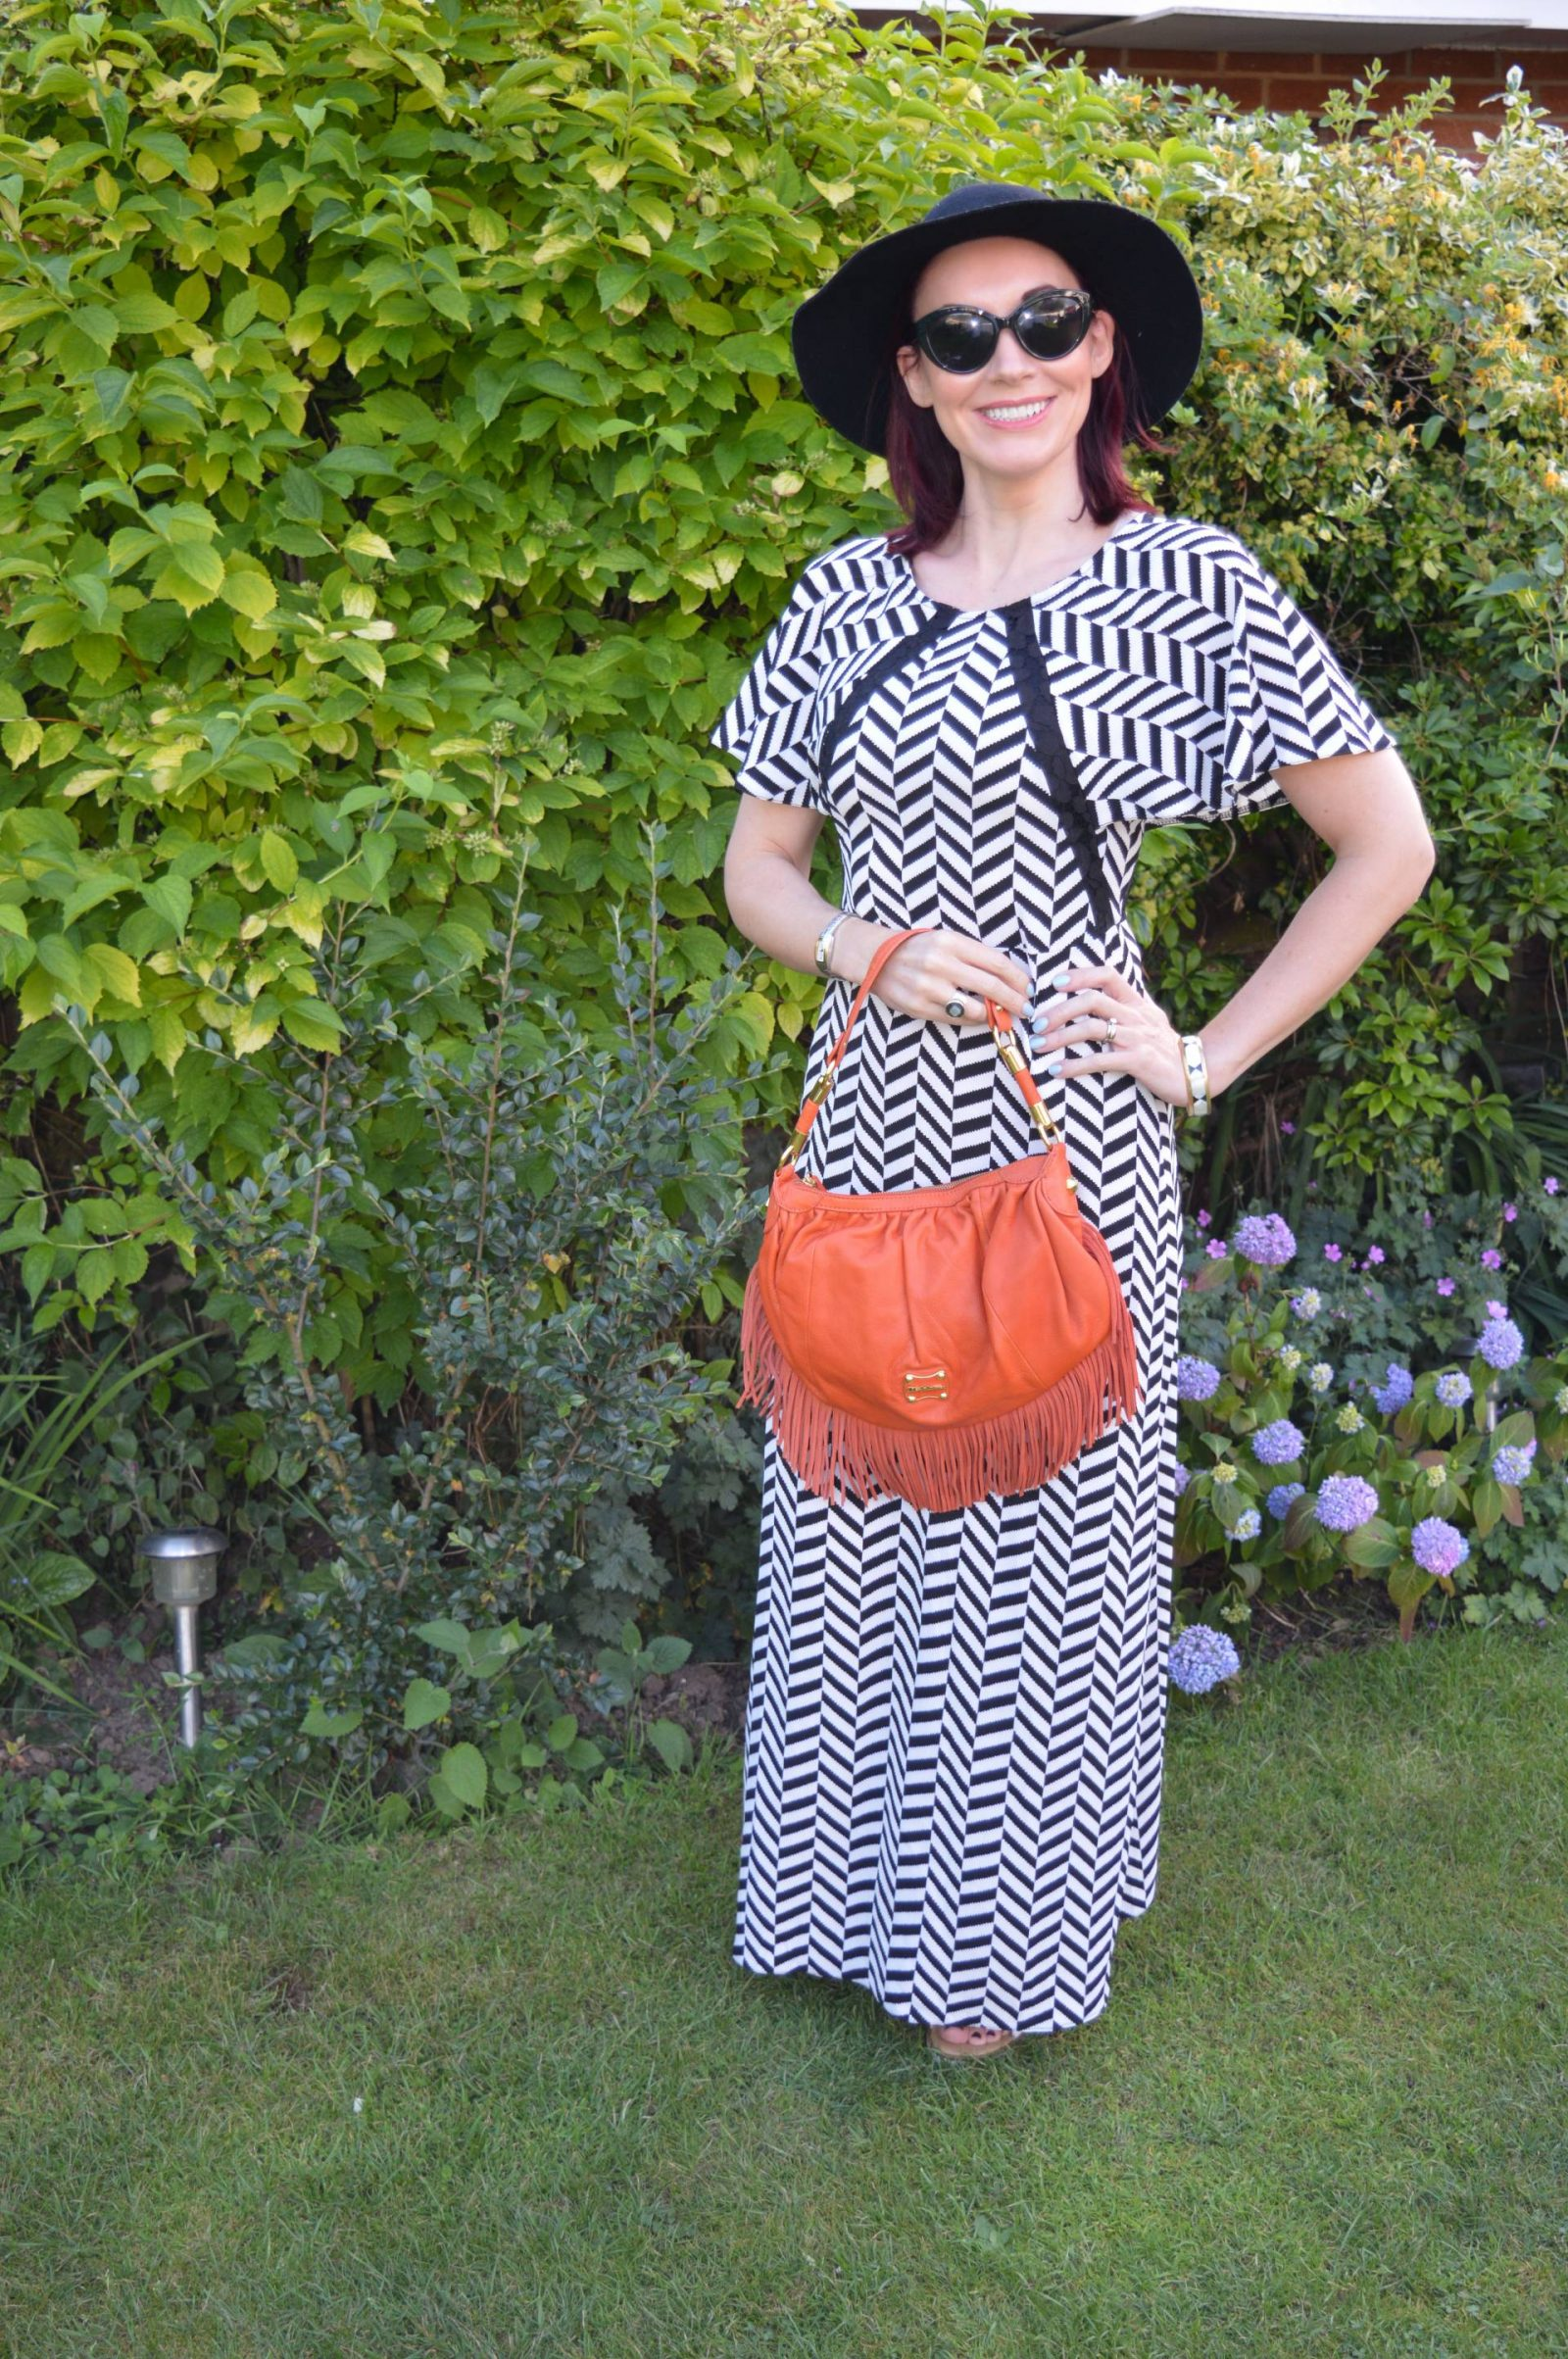 Liquorish Black and White Maxi Dress With a Wide Brim Hat orange Modalu fringe bag